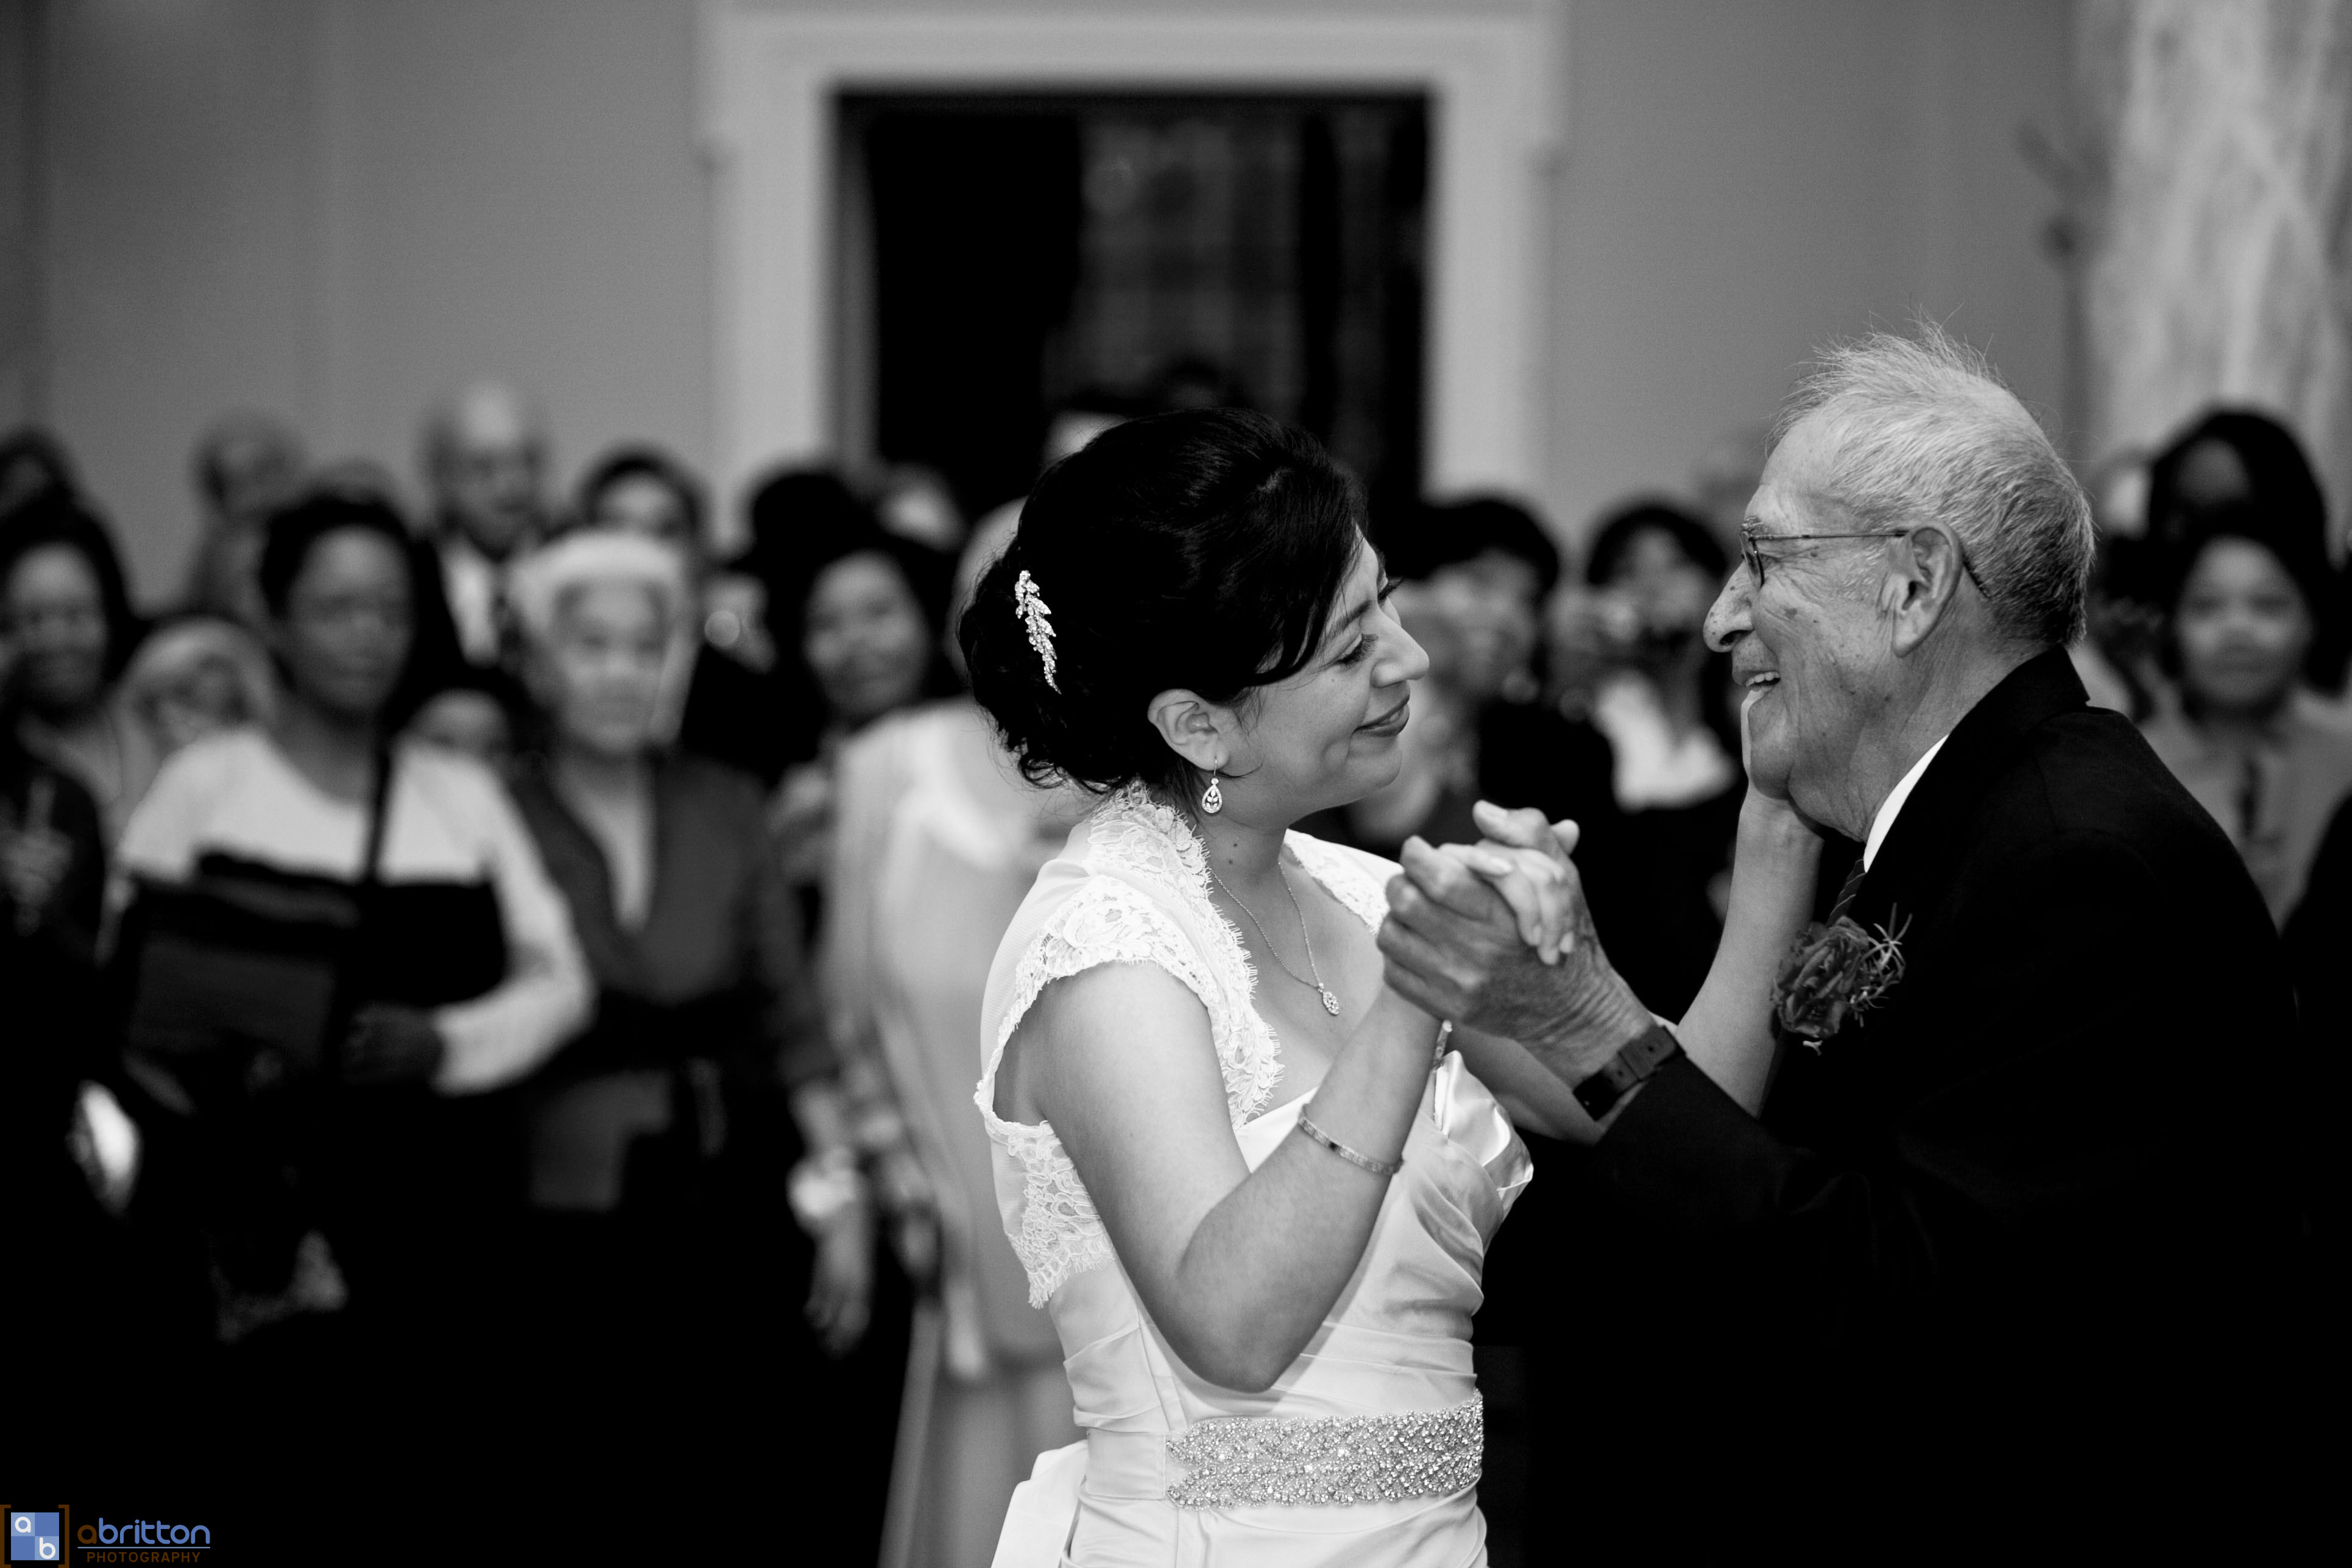 Bride_Dancing_with_her_Father